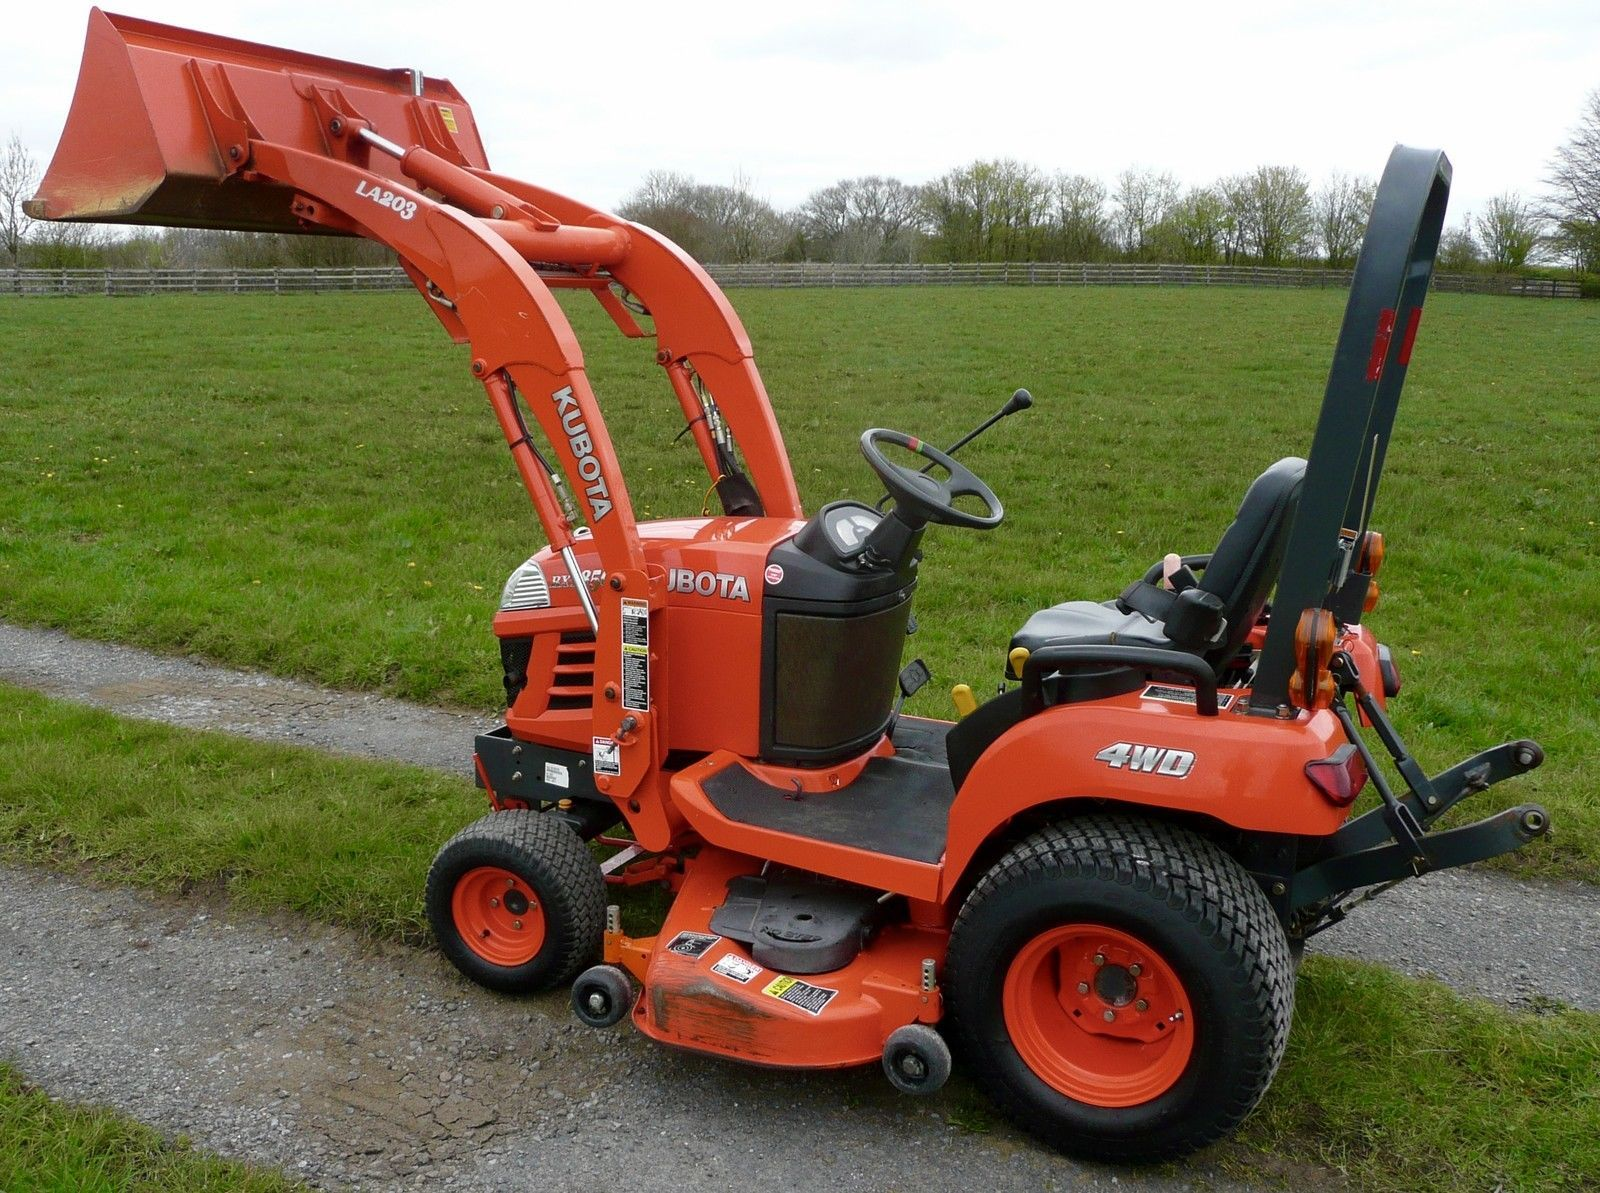 Small Tractors With Pto : Compact tractor kubota diesel mower pto diff lock